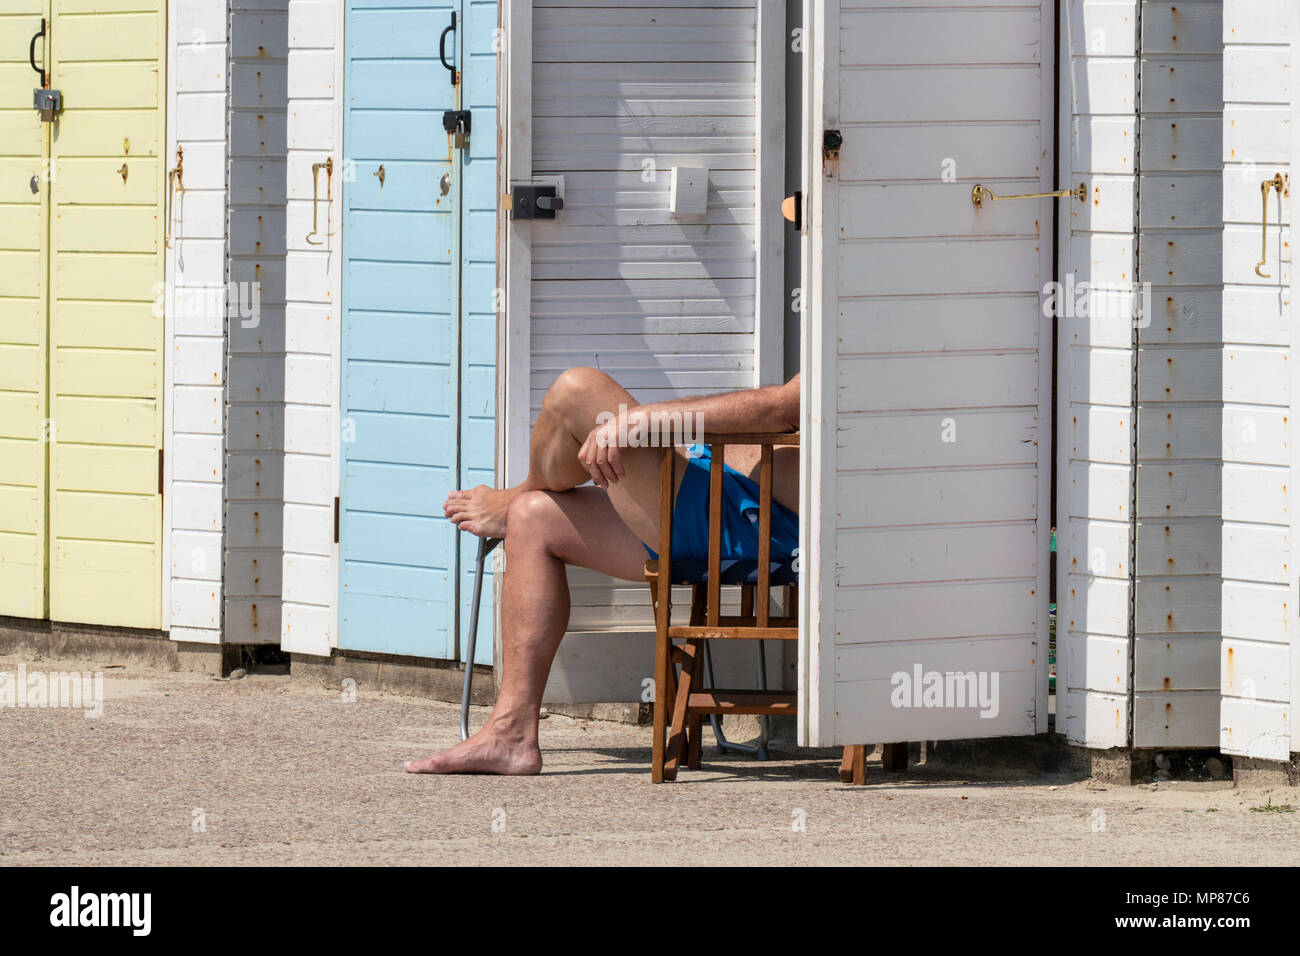 View of unidentifiable man sitting on chair by beach hut Lyme Regis Dorset England UK - Stock Image